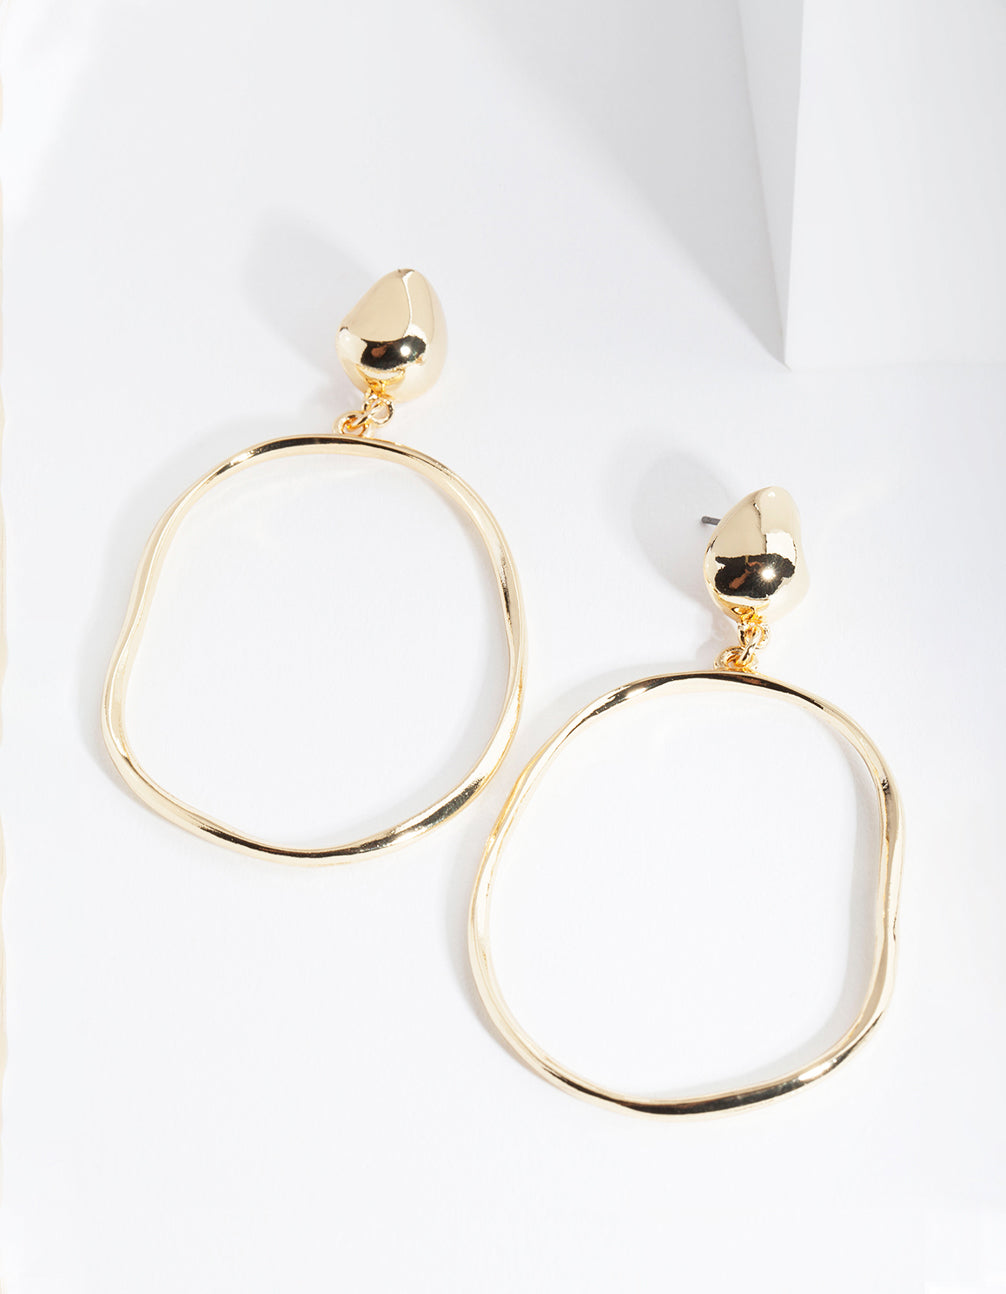 Real Gold Plated Door Knocker Circle Earrings